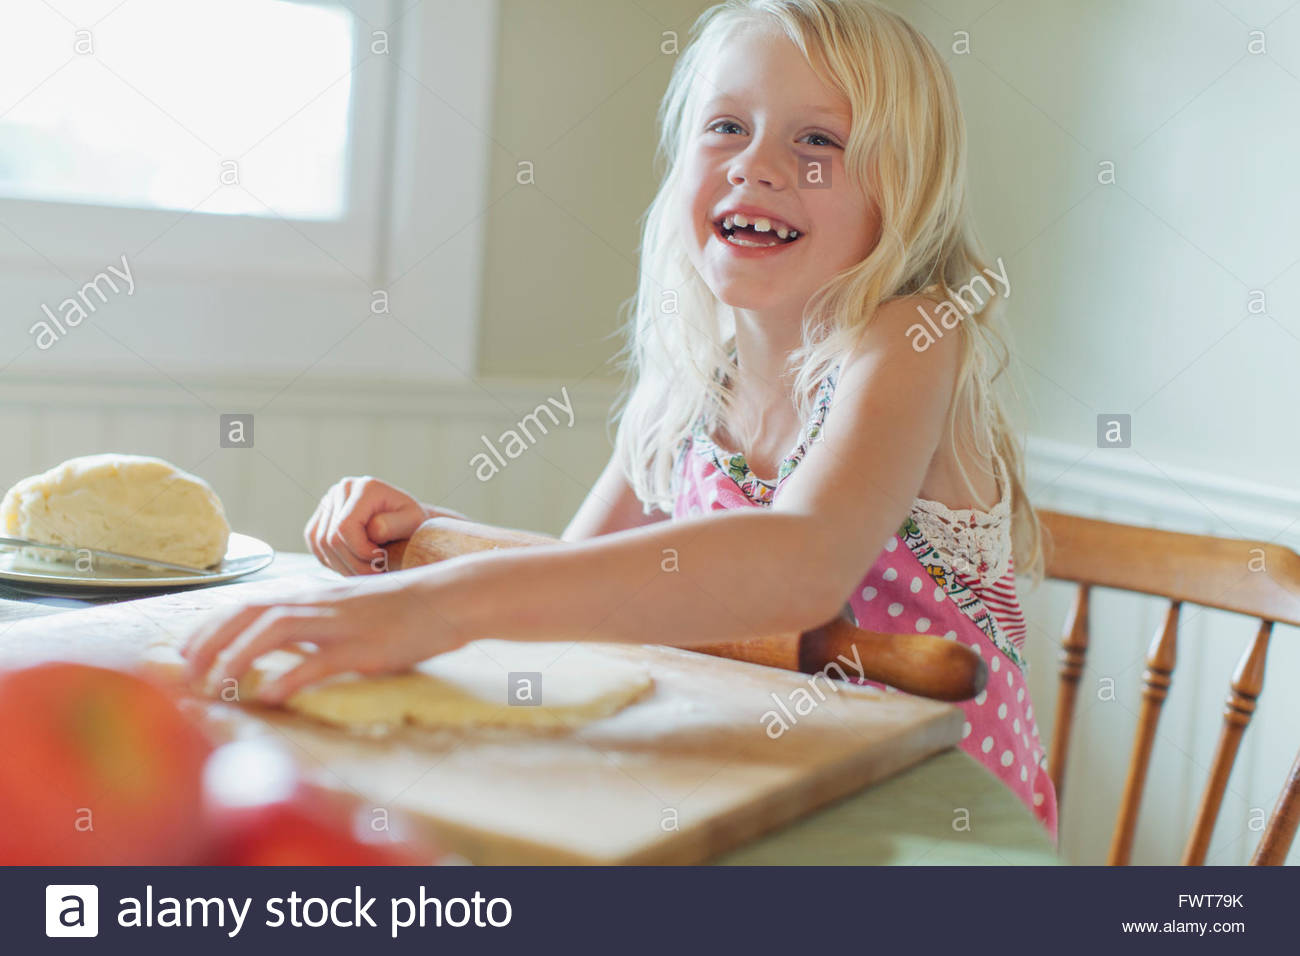 Young girl playing with pie dough. - Stock Image